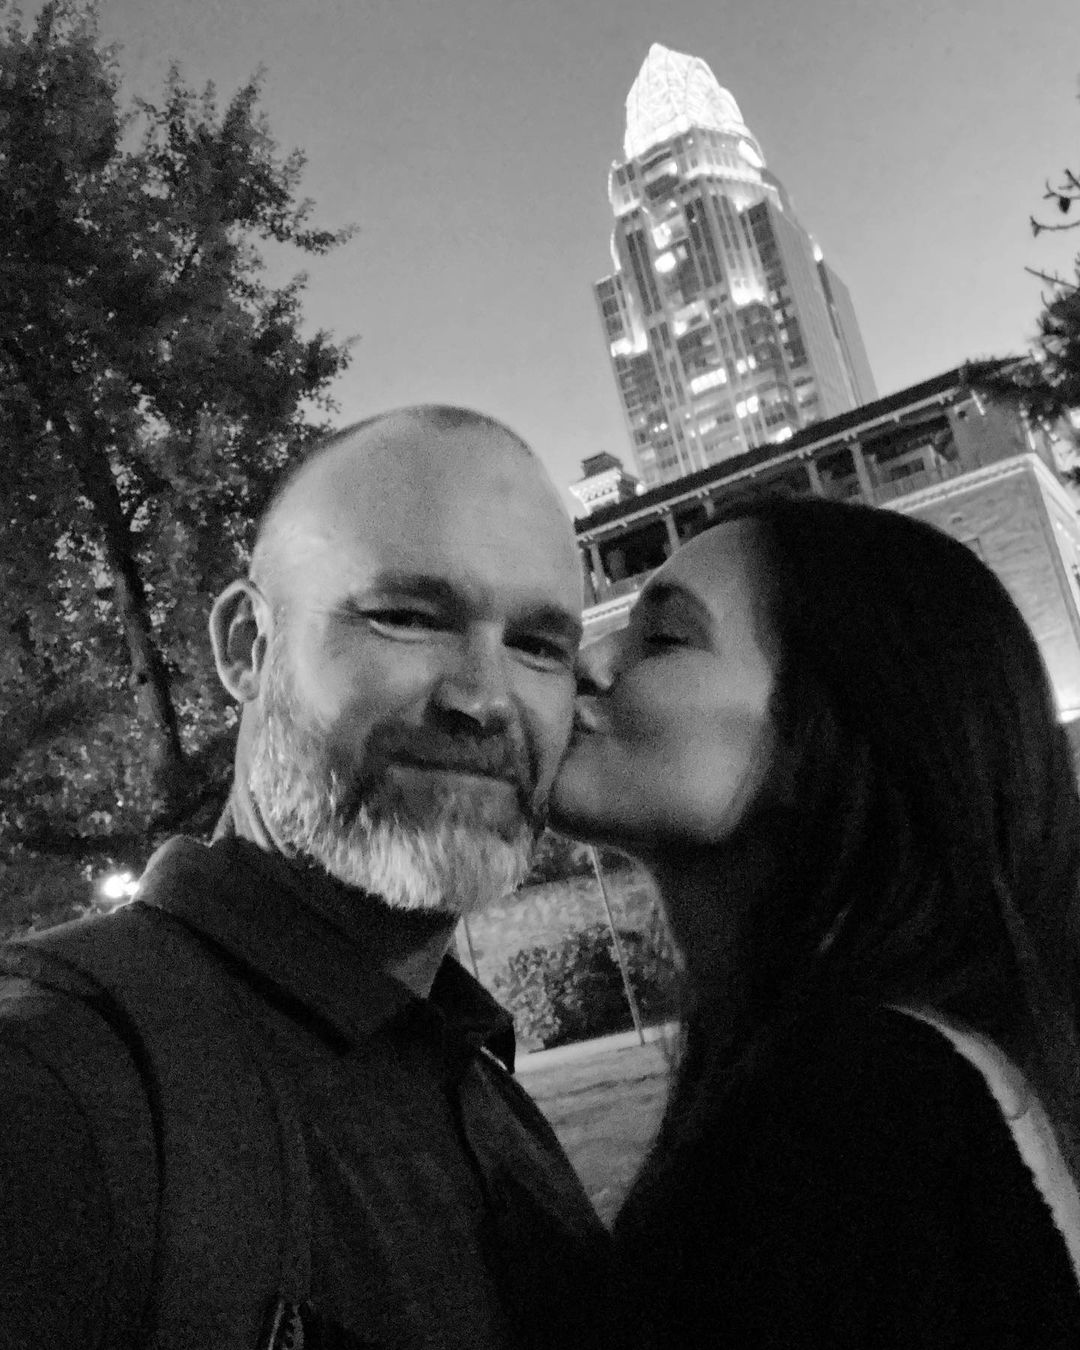 David Ross and Torrey Devitto are officially dating.